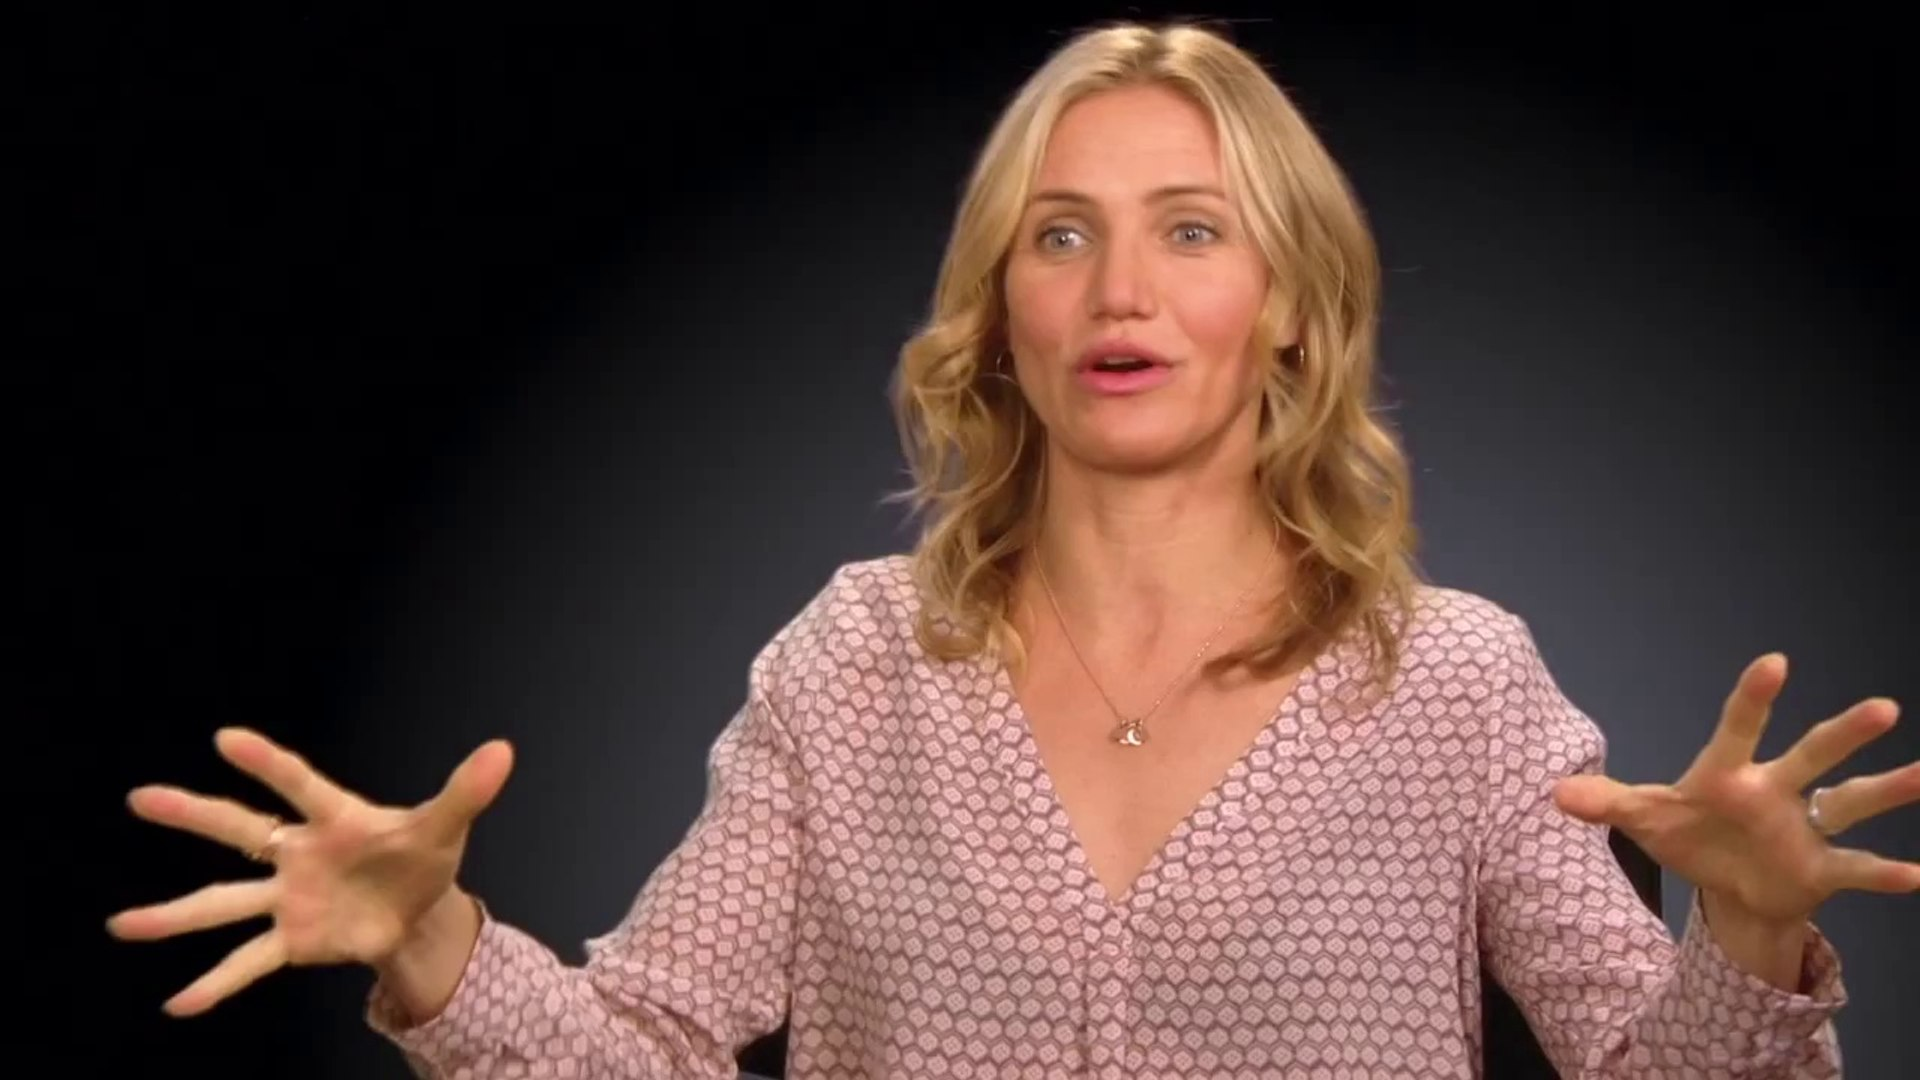 Sex Tape Interview - Cameron Diaz (2014) - Raunchy Sex Comedy HD